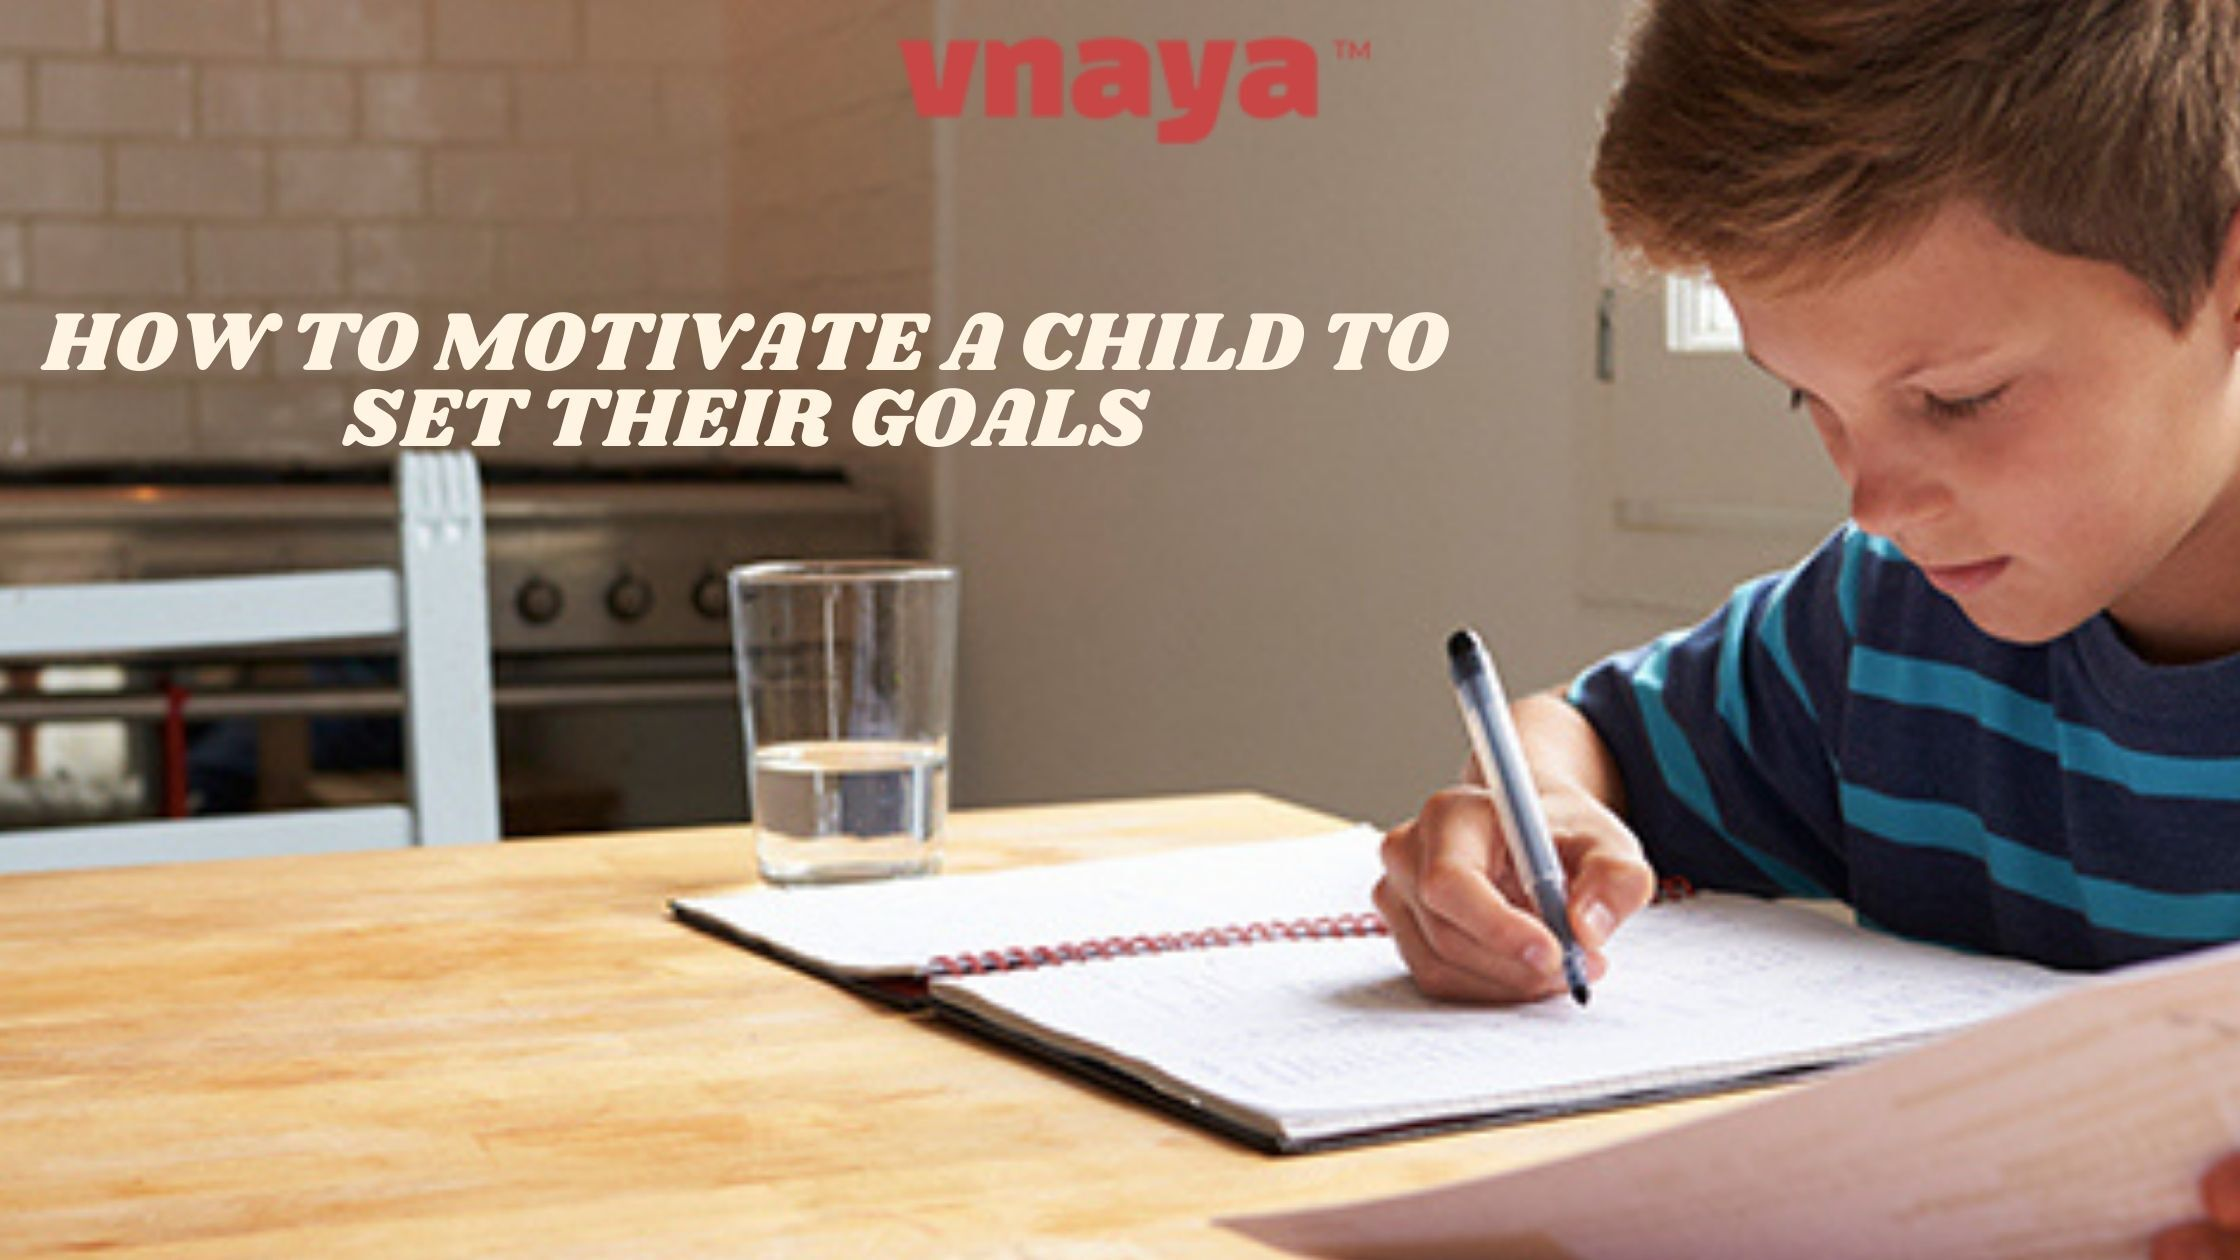 How to motivate a child to set their goals